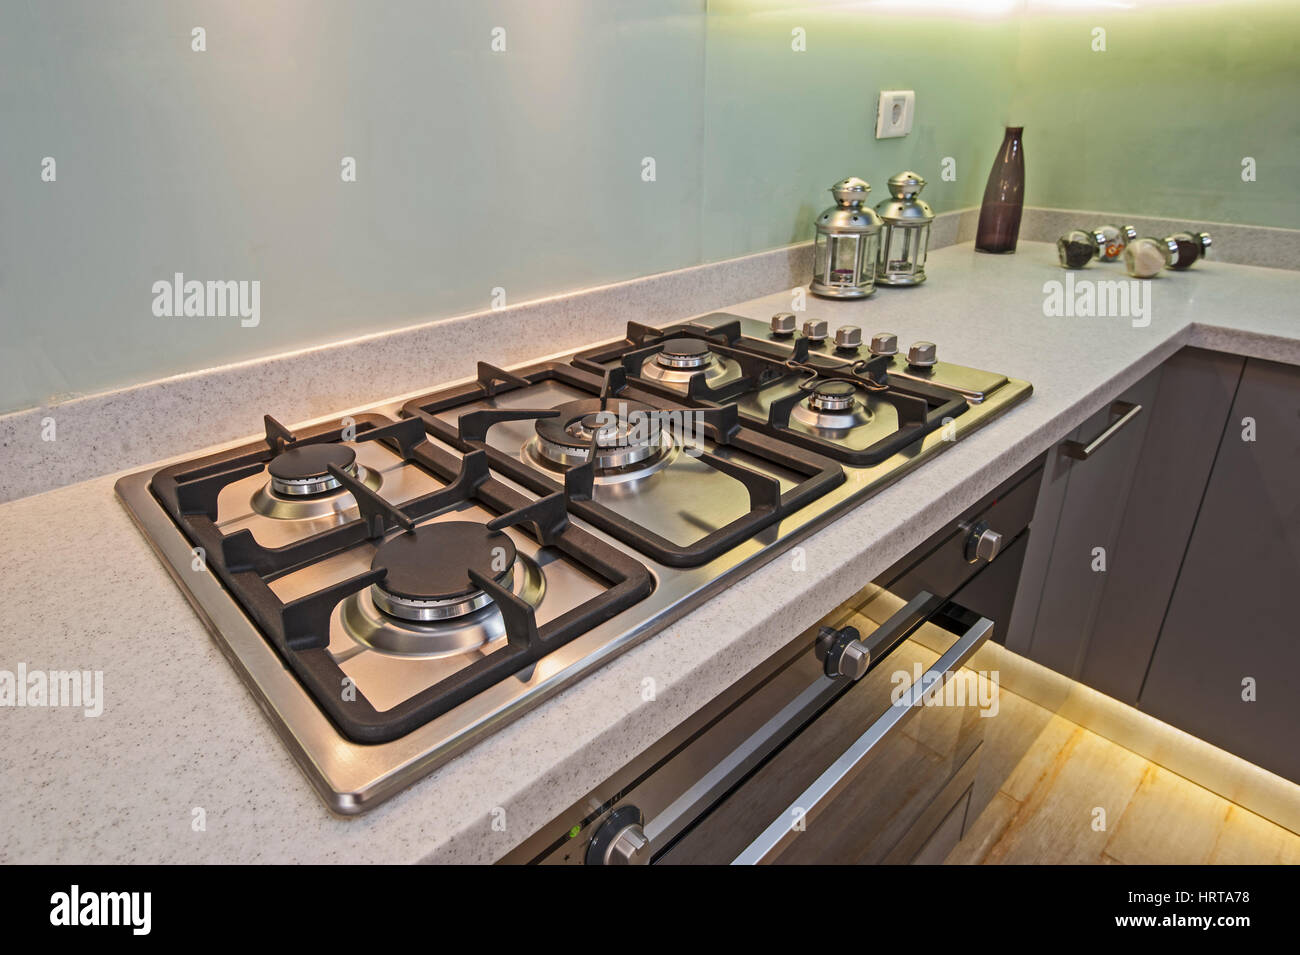 Interior design decor of kitchen in luxury apartment with gas cooker ...